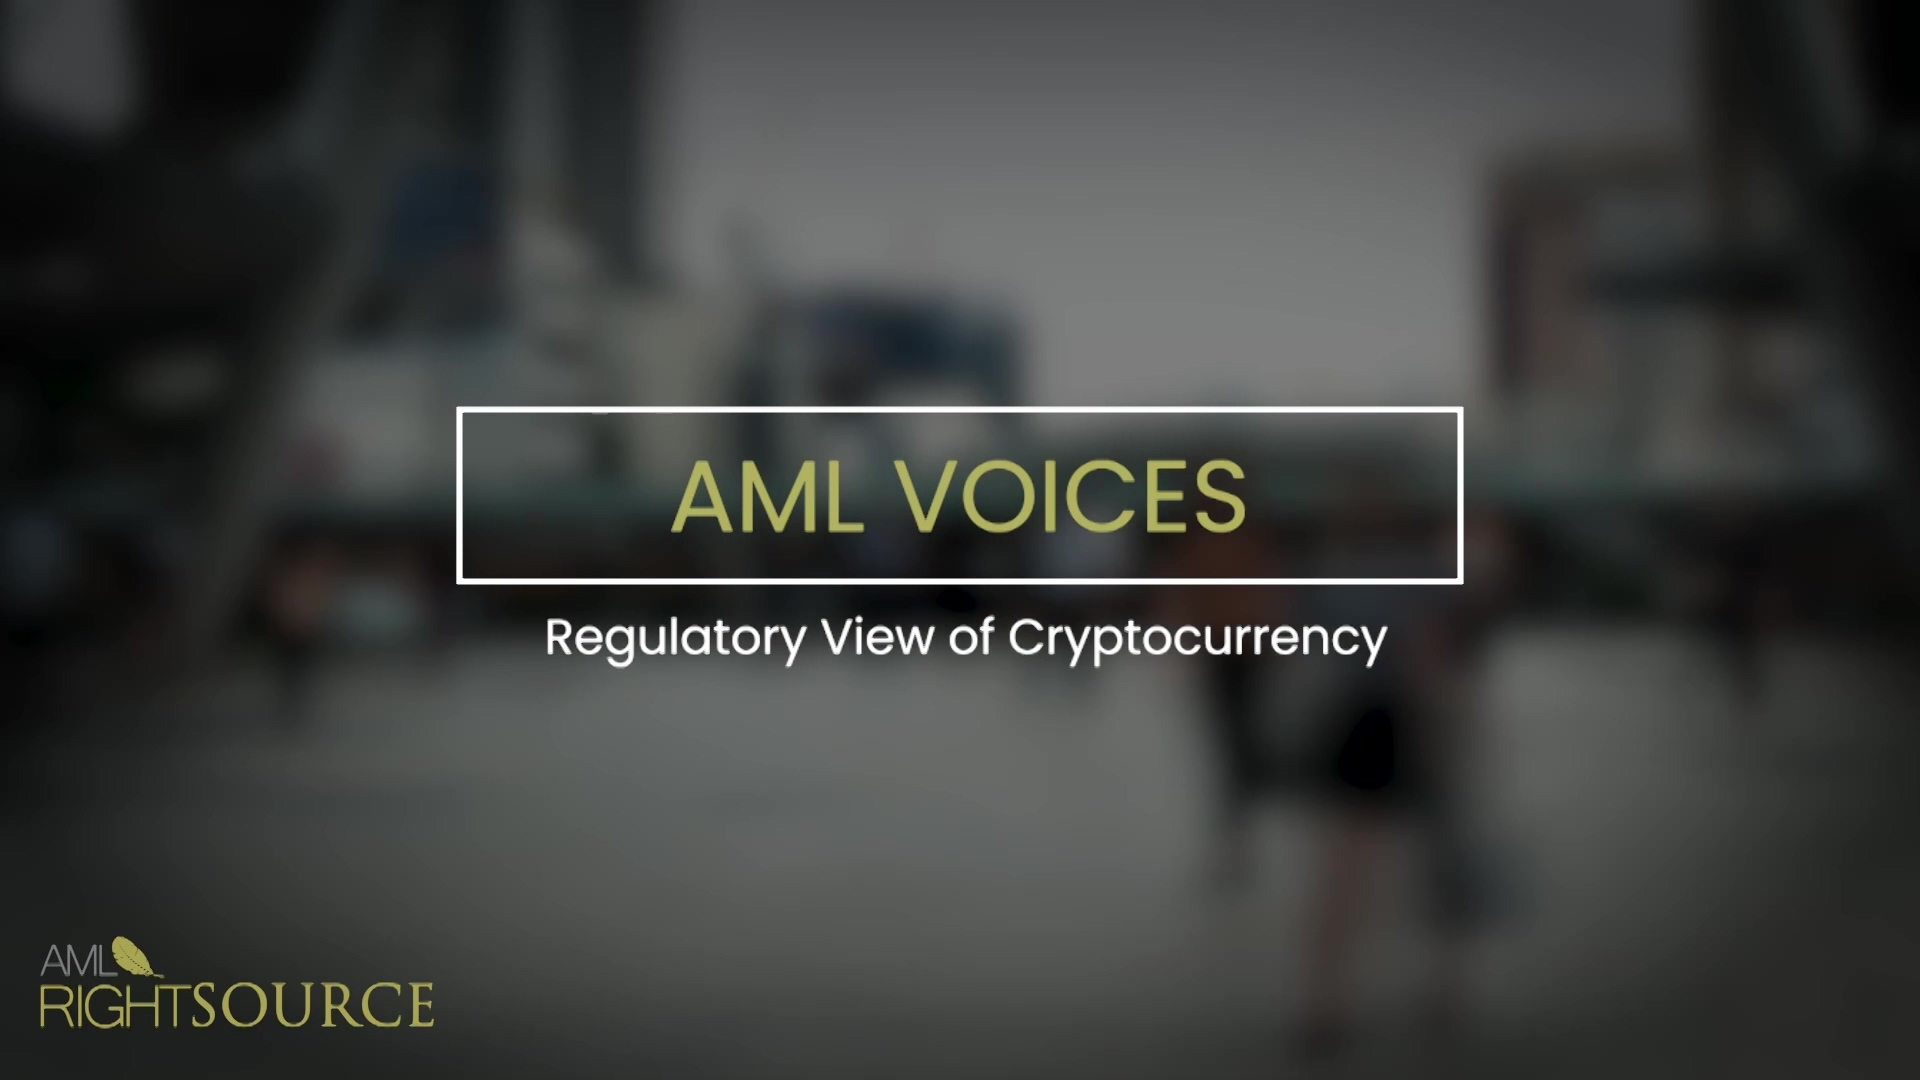 Regulatory View of Cryptocurrency